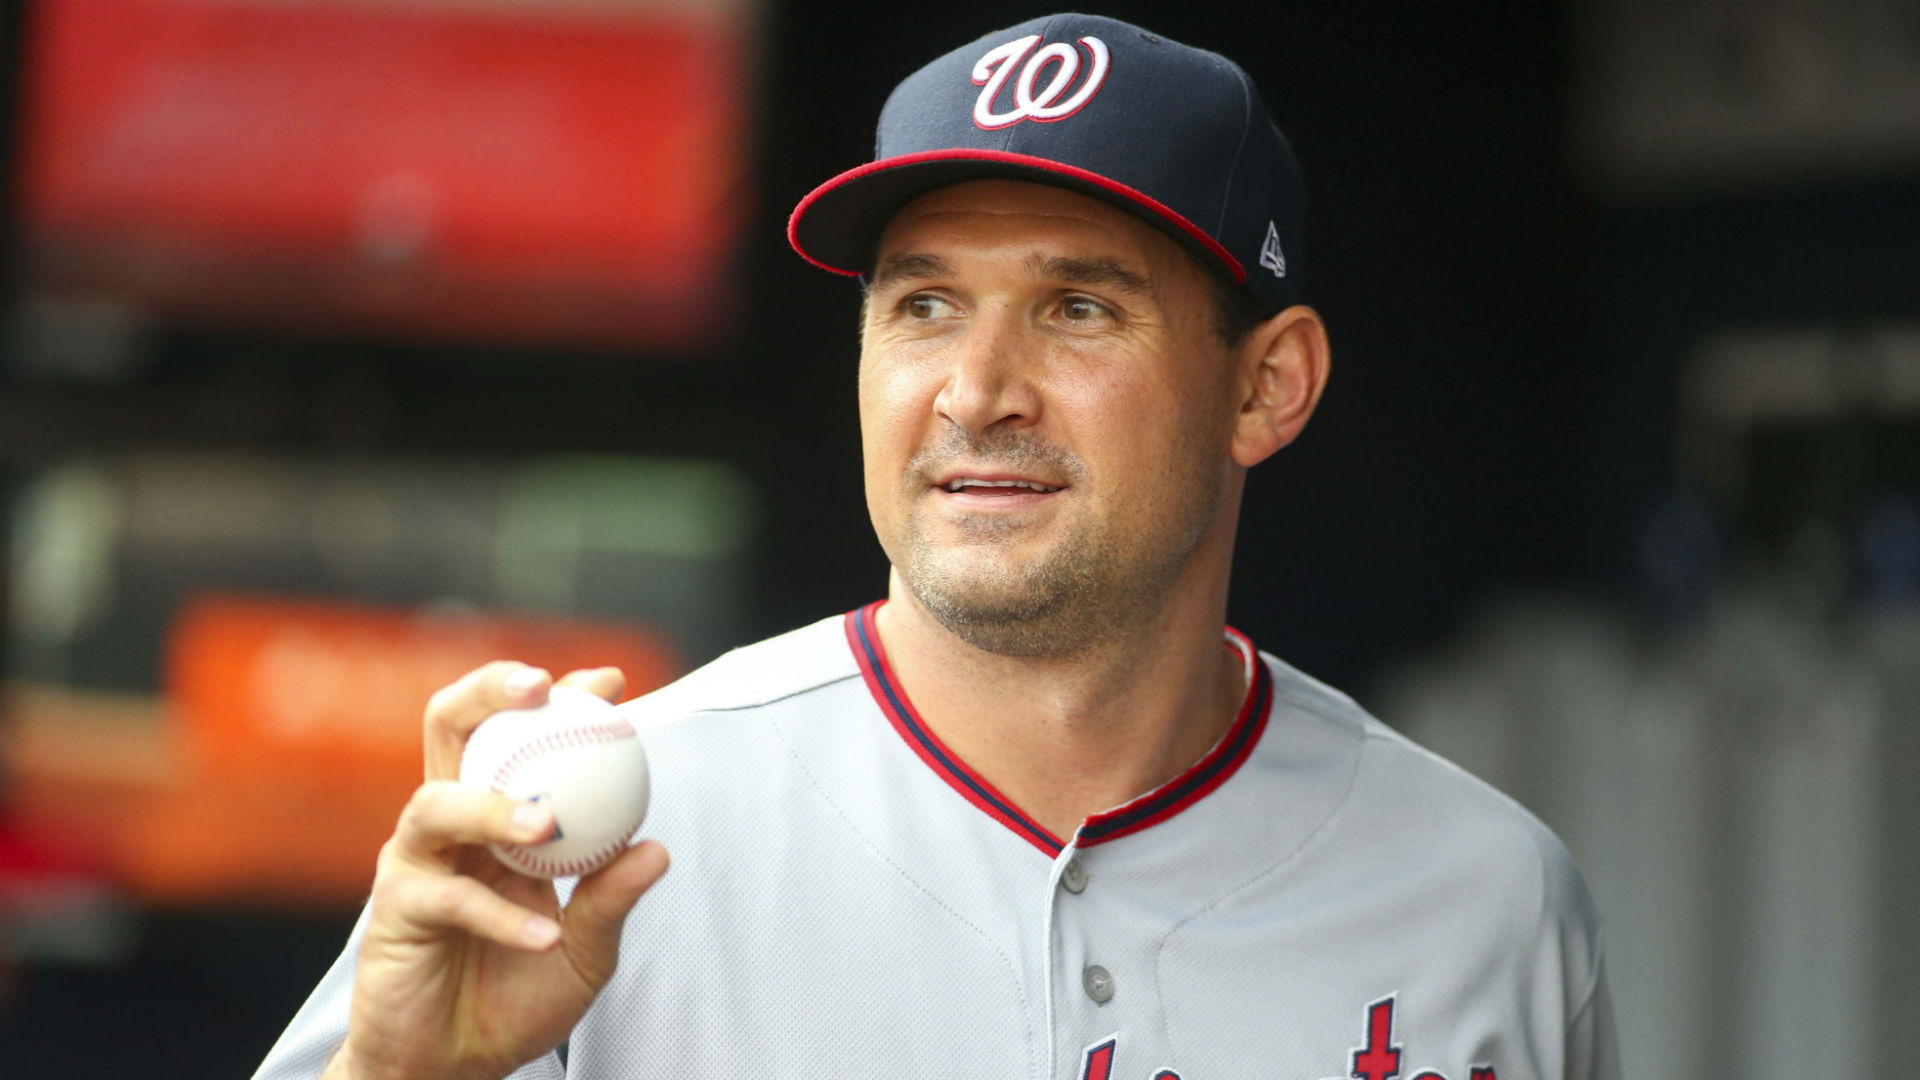 Sandbridge native Ryan Zimmerman creates Pros for Heroes charity relief fund